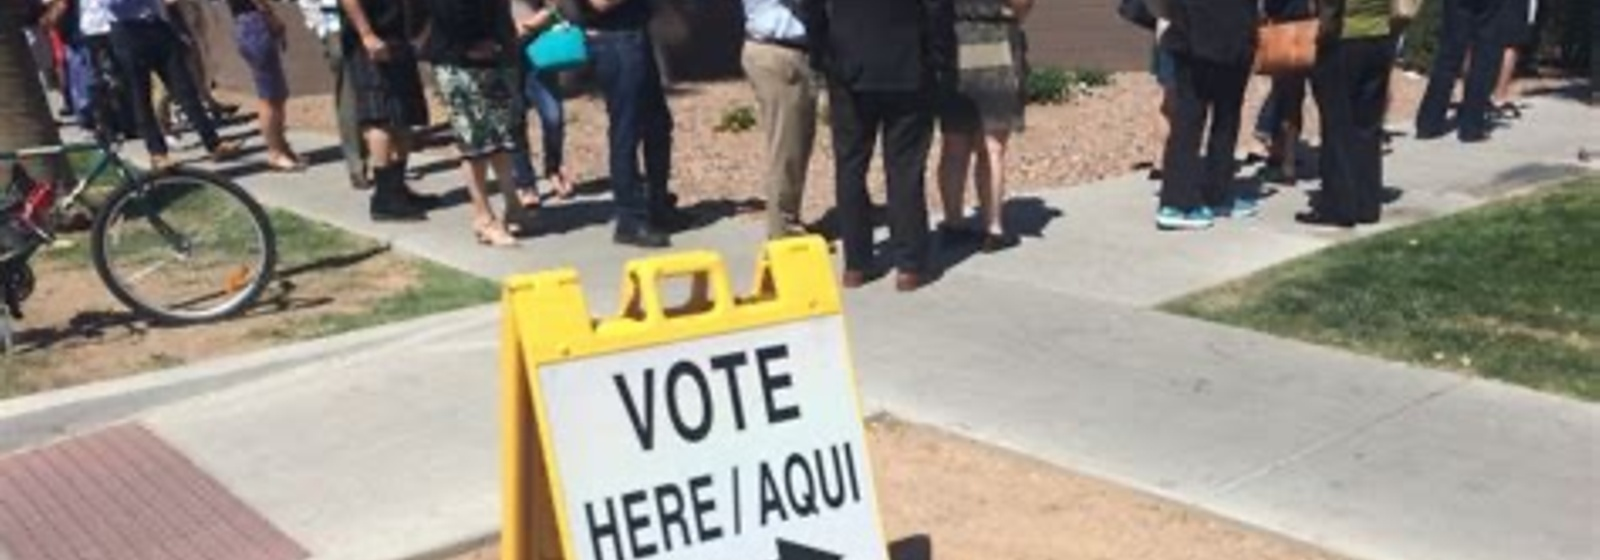 Arizona Passes Major Election Integrity Law